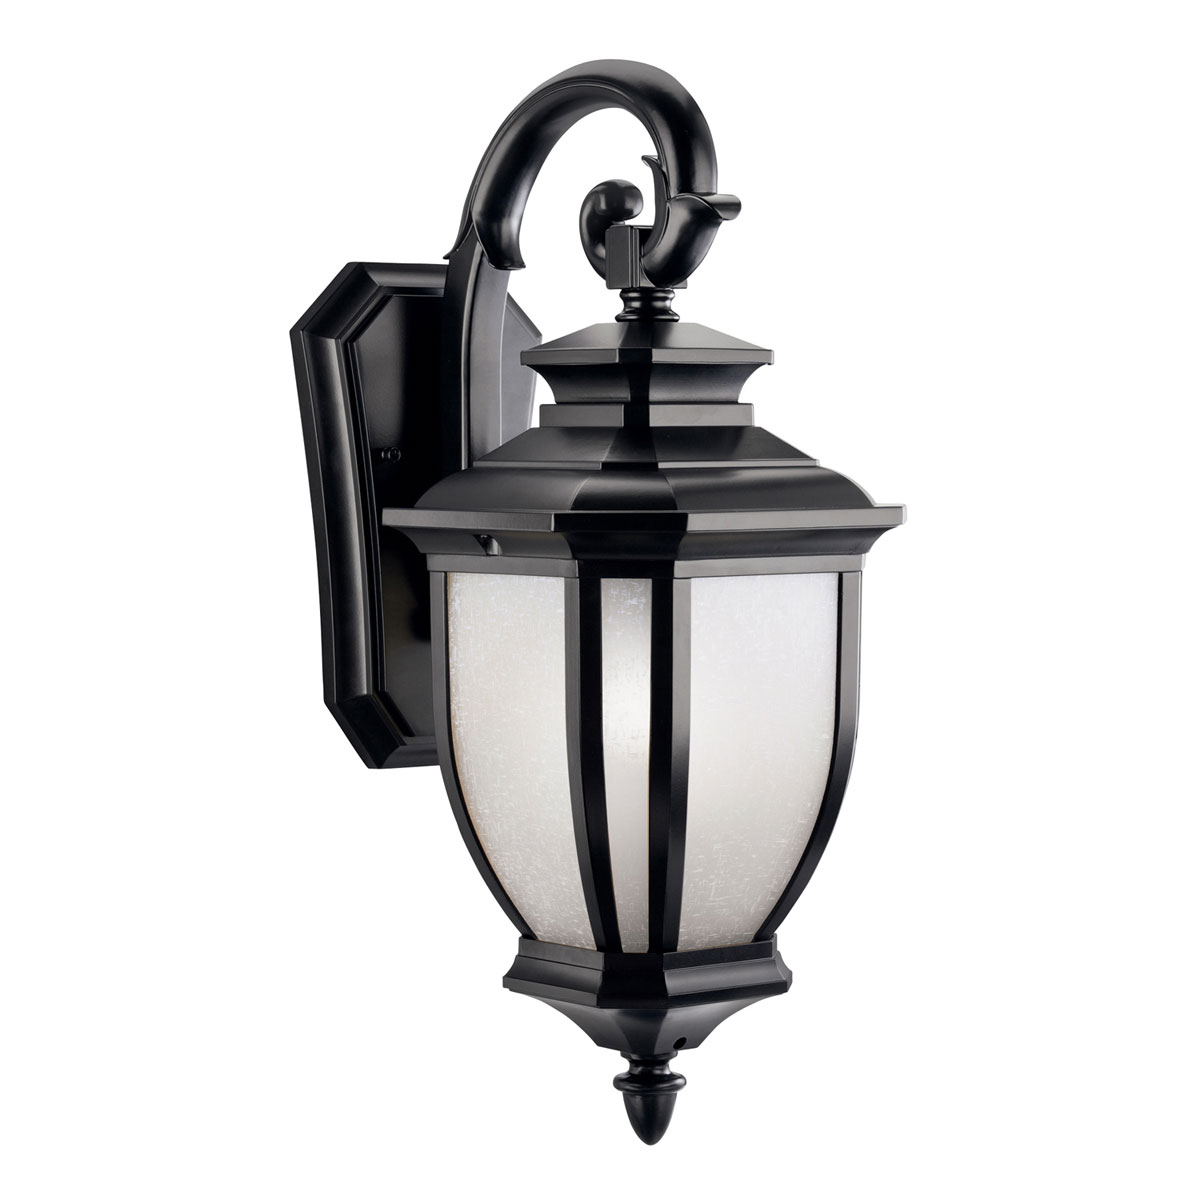 Outdoor Hanging Lantern Wall Sconce